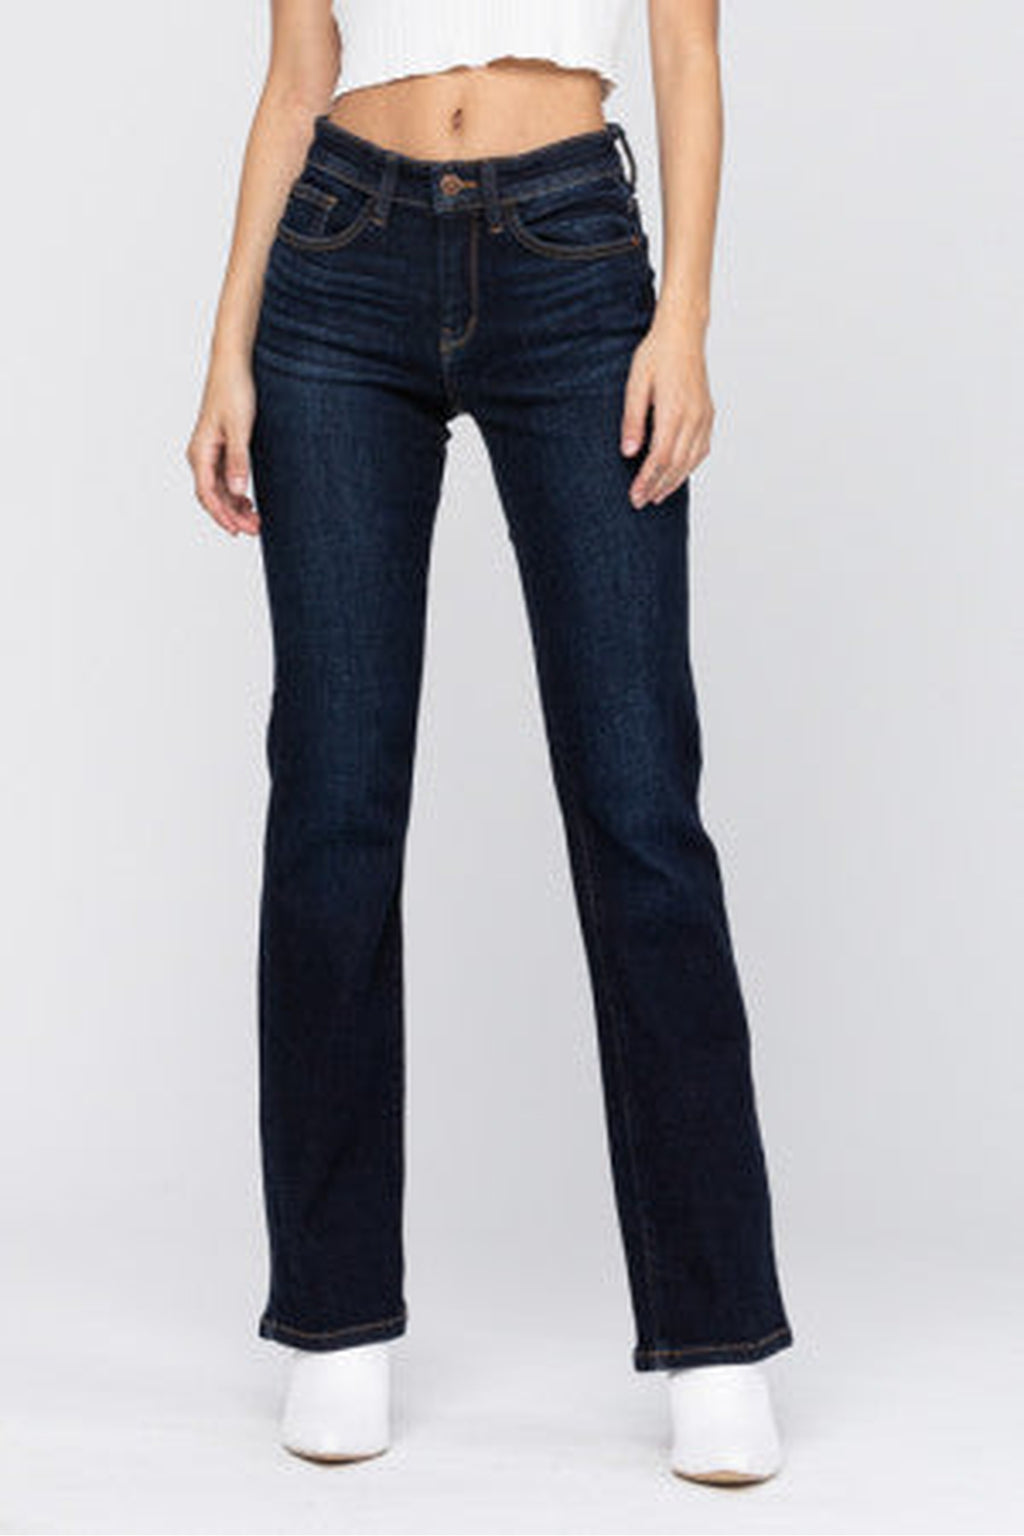 Judy Blue Whiskered Dark Bootcut Jean - 82361 - M C and J